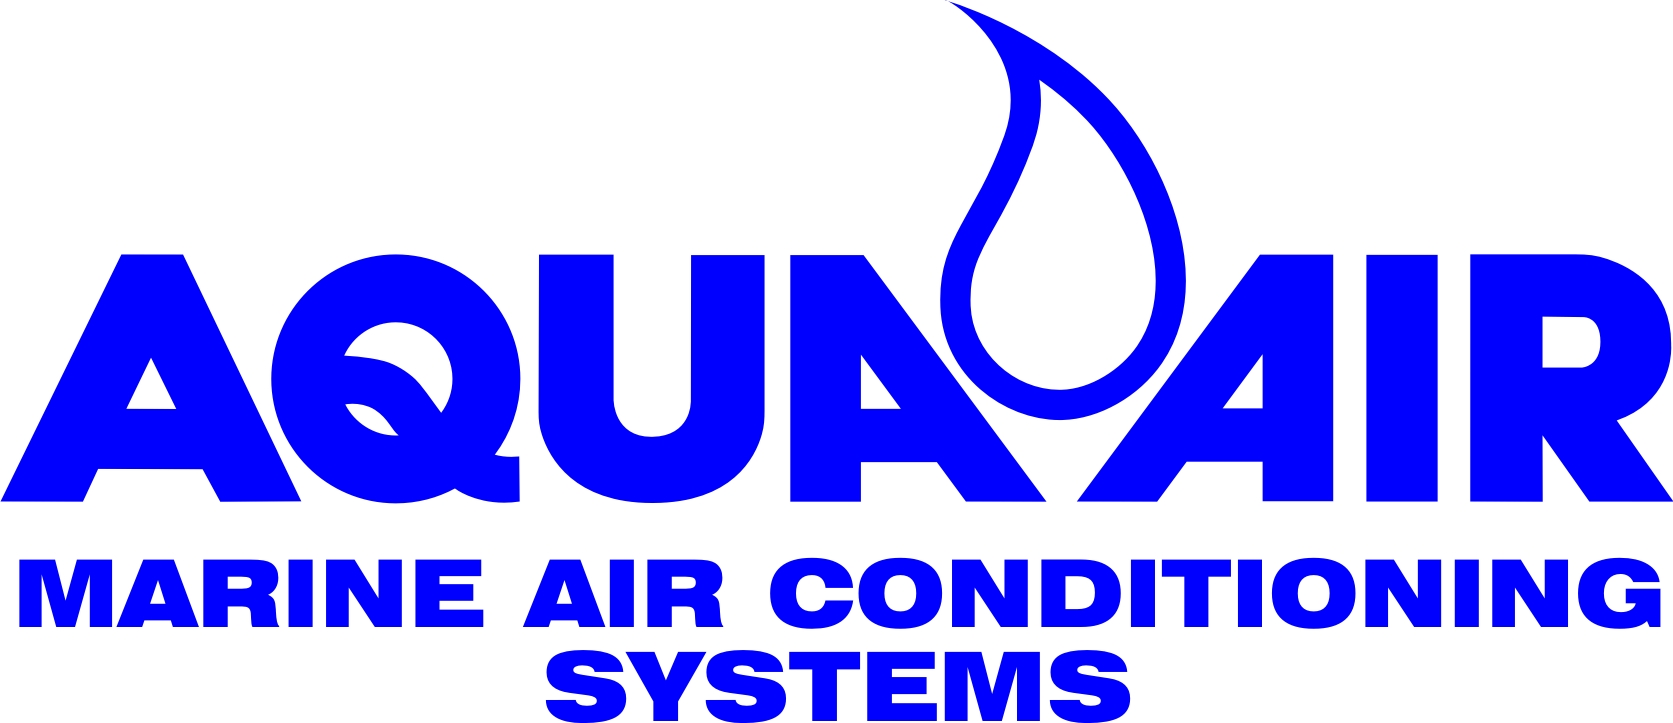 Aqua Air Marine Conditioning Systems For Yachts Of All Sizes Cruisair Ac Wiring Diagram